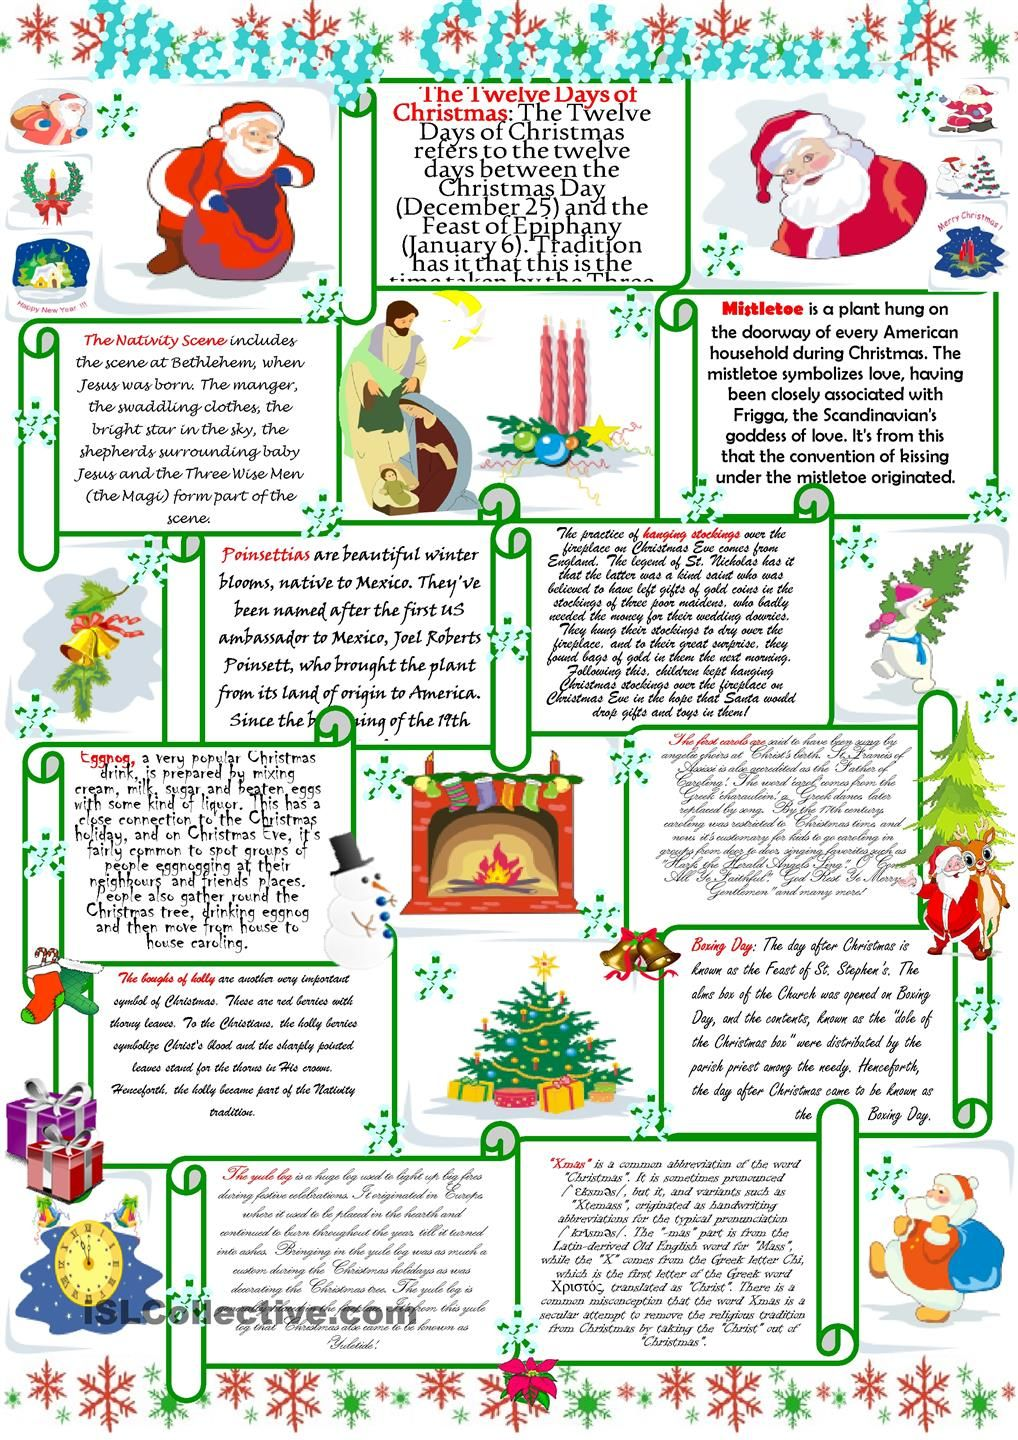 Merry Christmas! | School | Pinterest | Merry, English and Worksheets